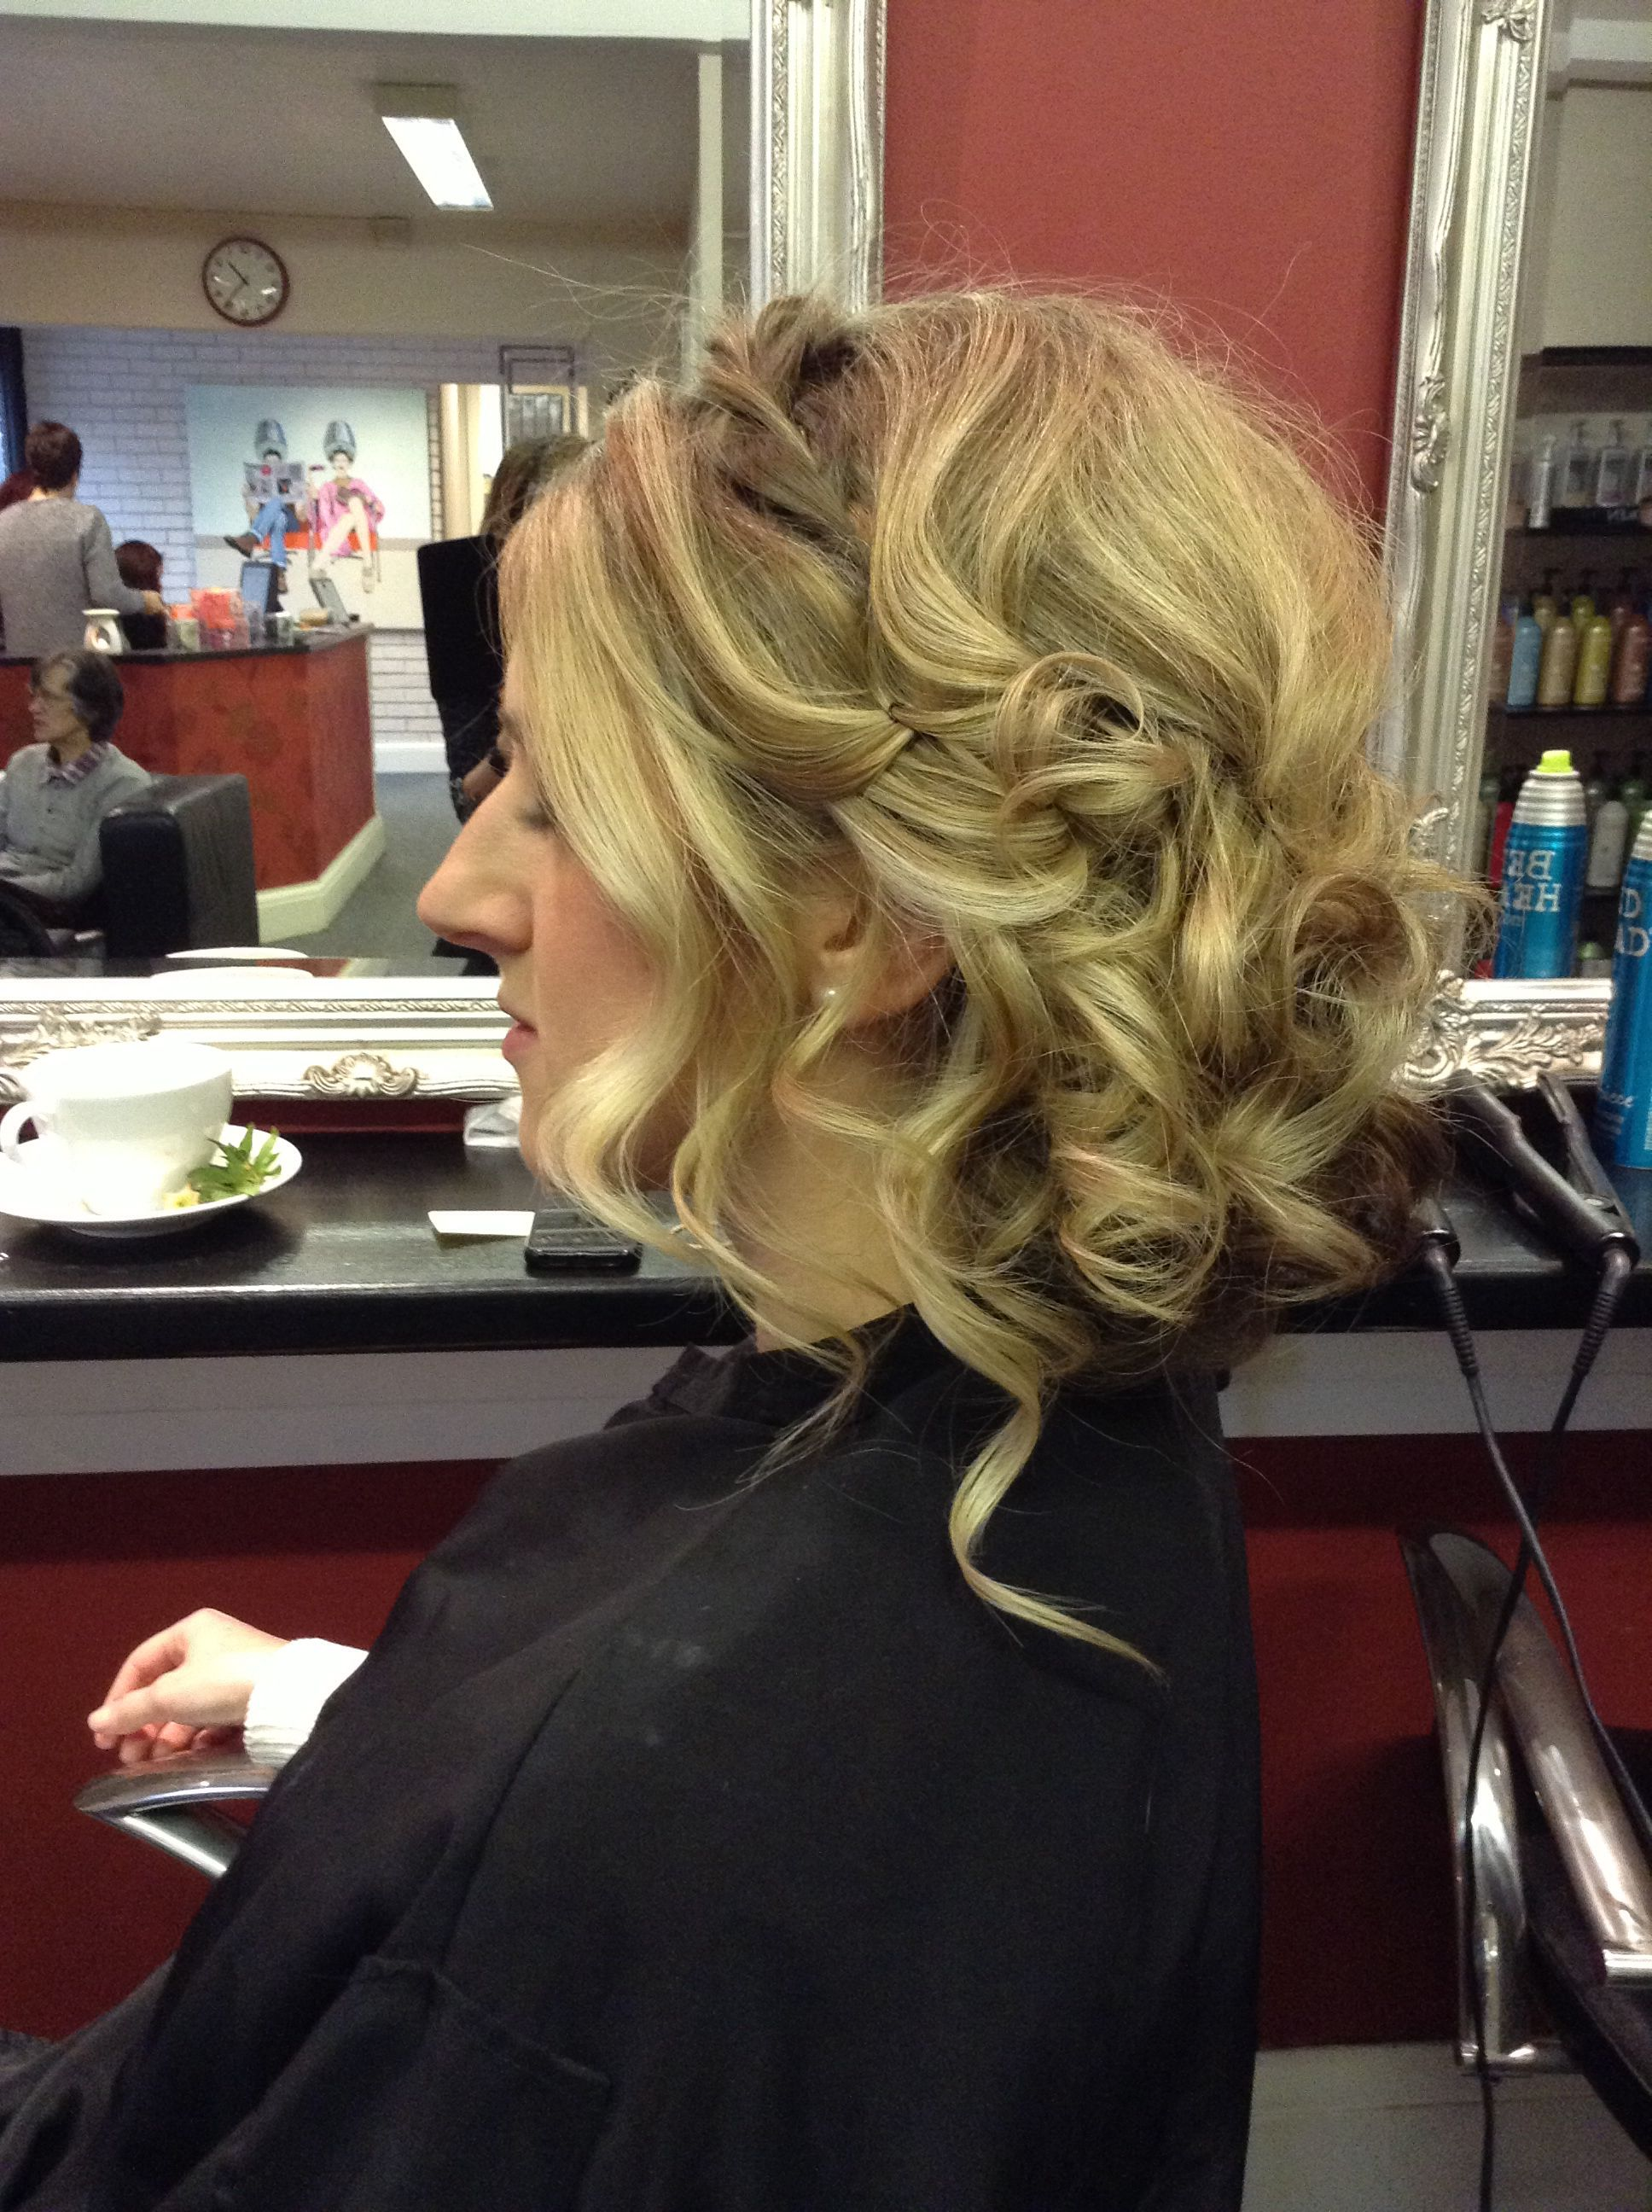 Wavy beachy hair up with twists and top braid -hair by Jac